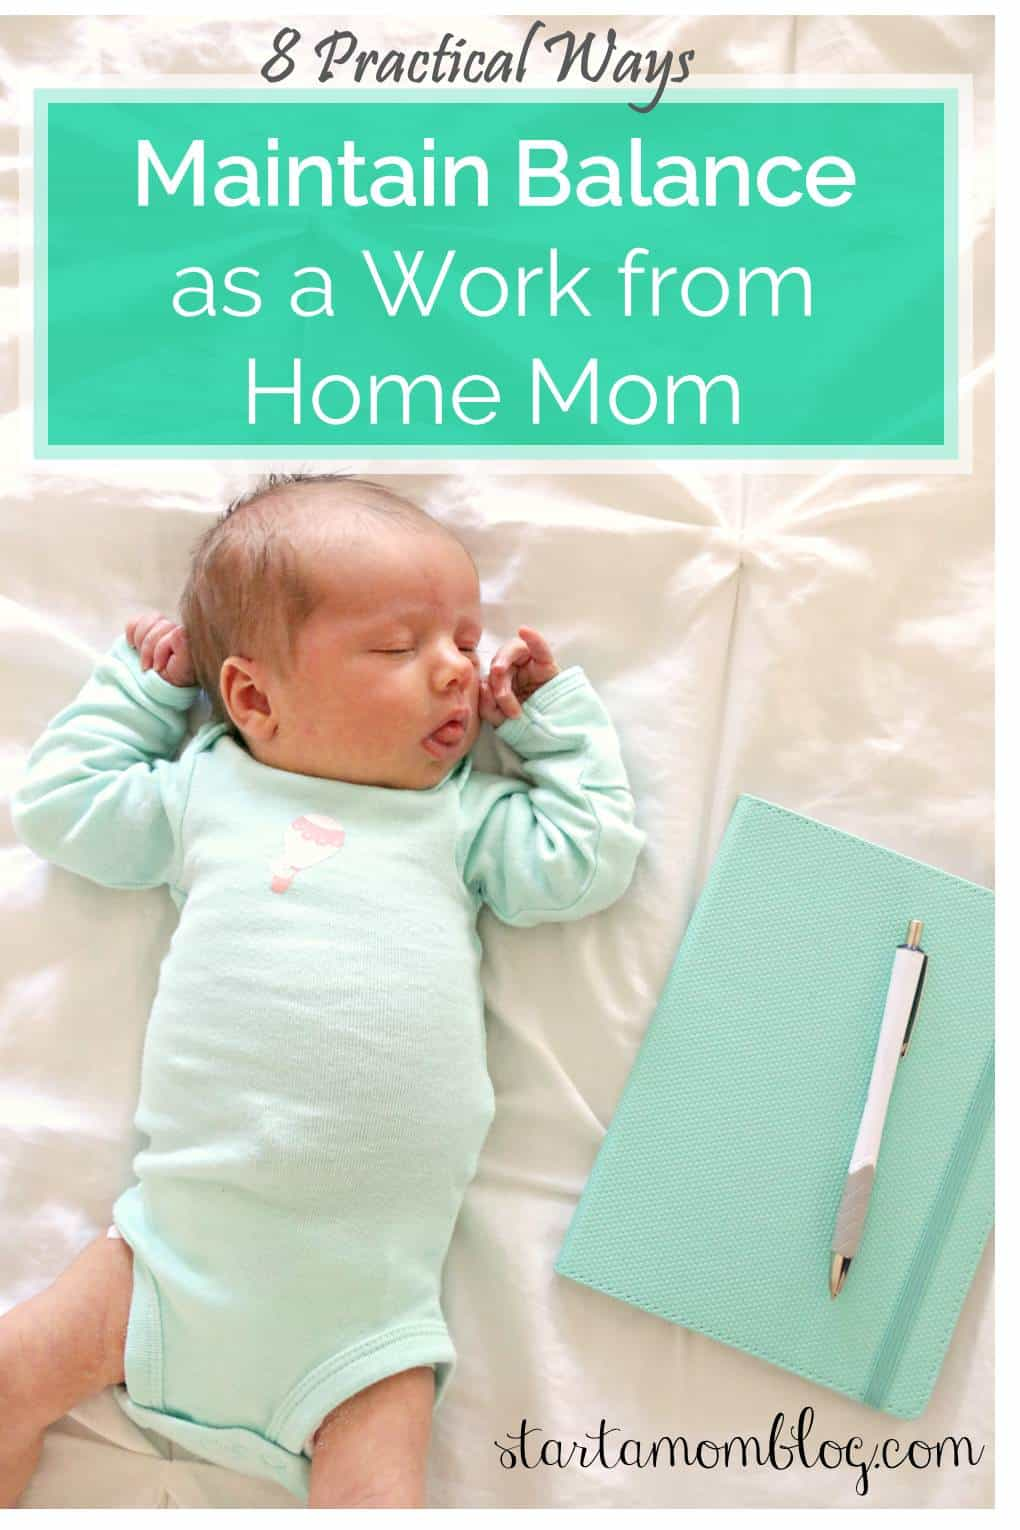 8 Practical Ways to Maintain Balance as a Work From Home Mom